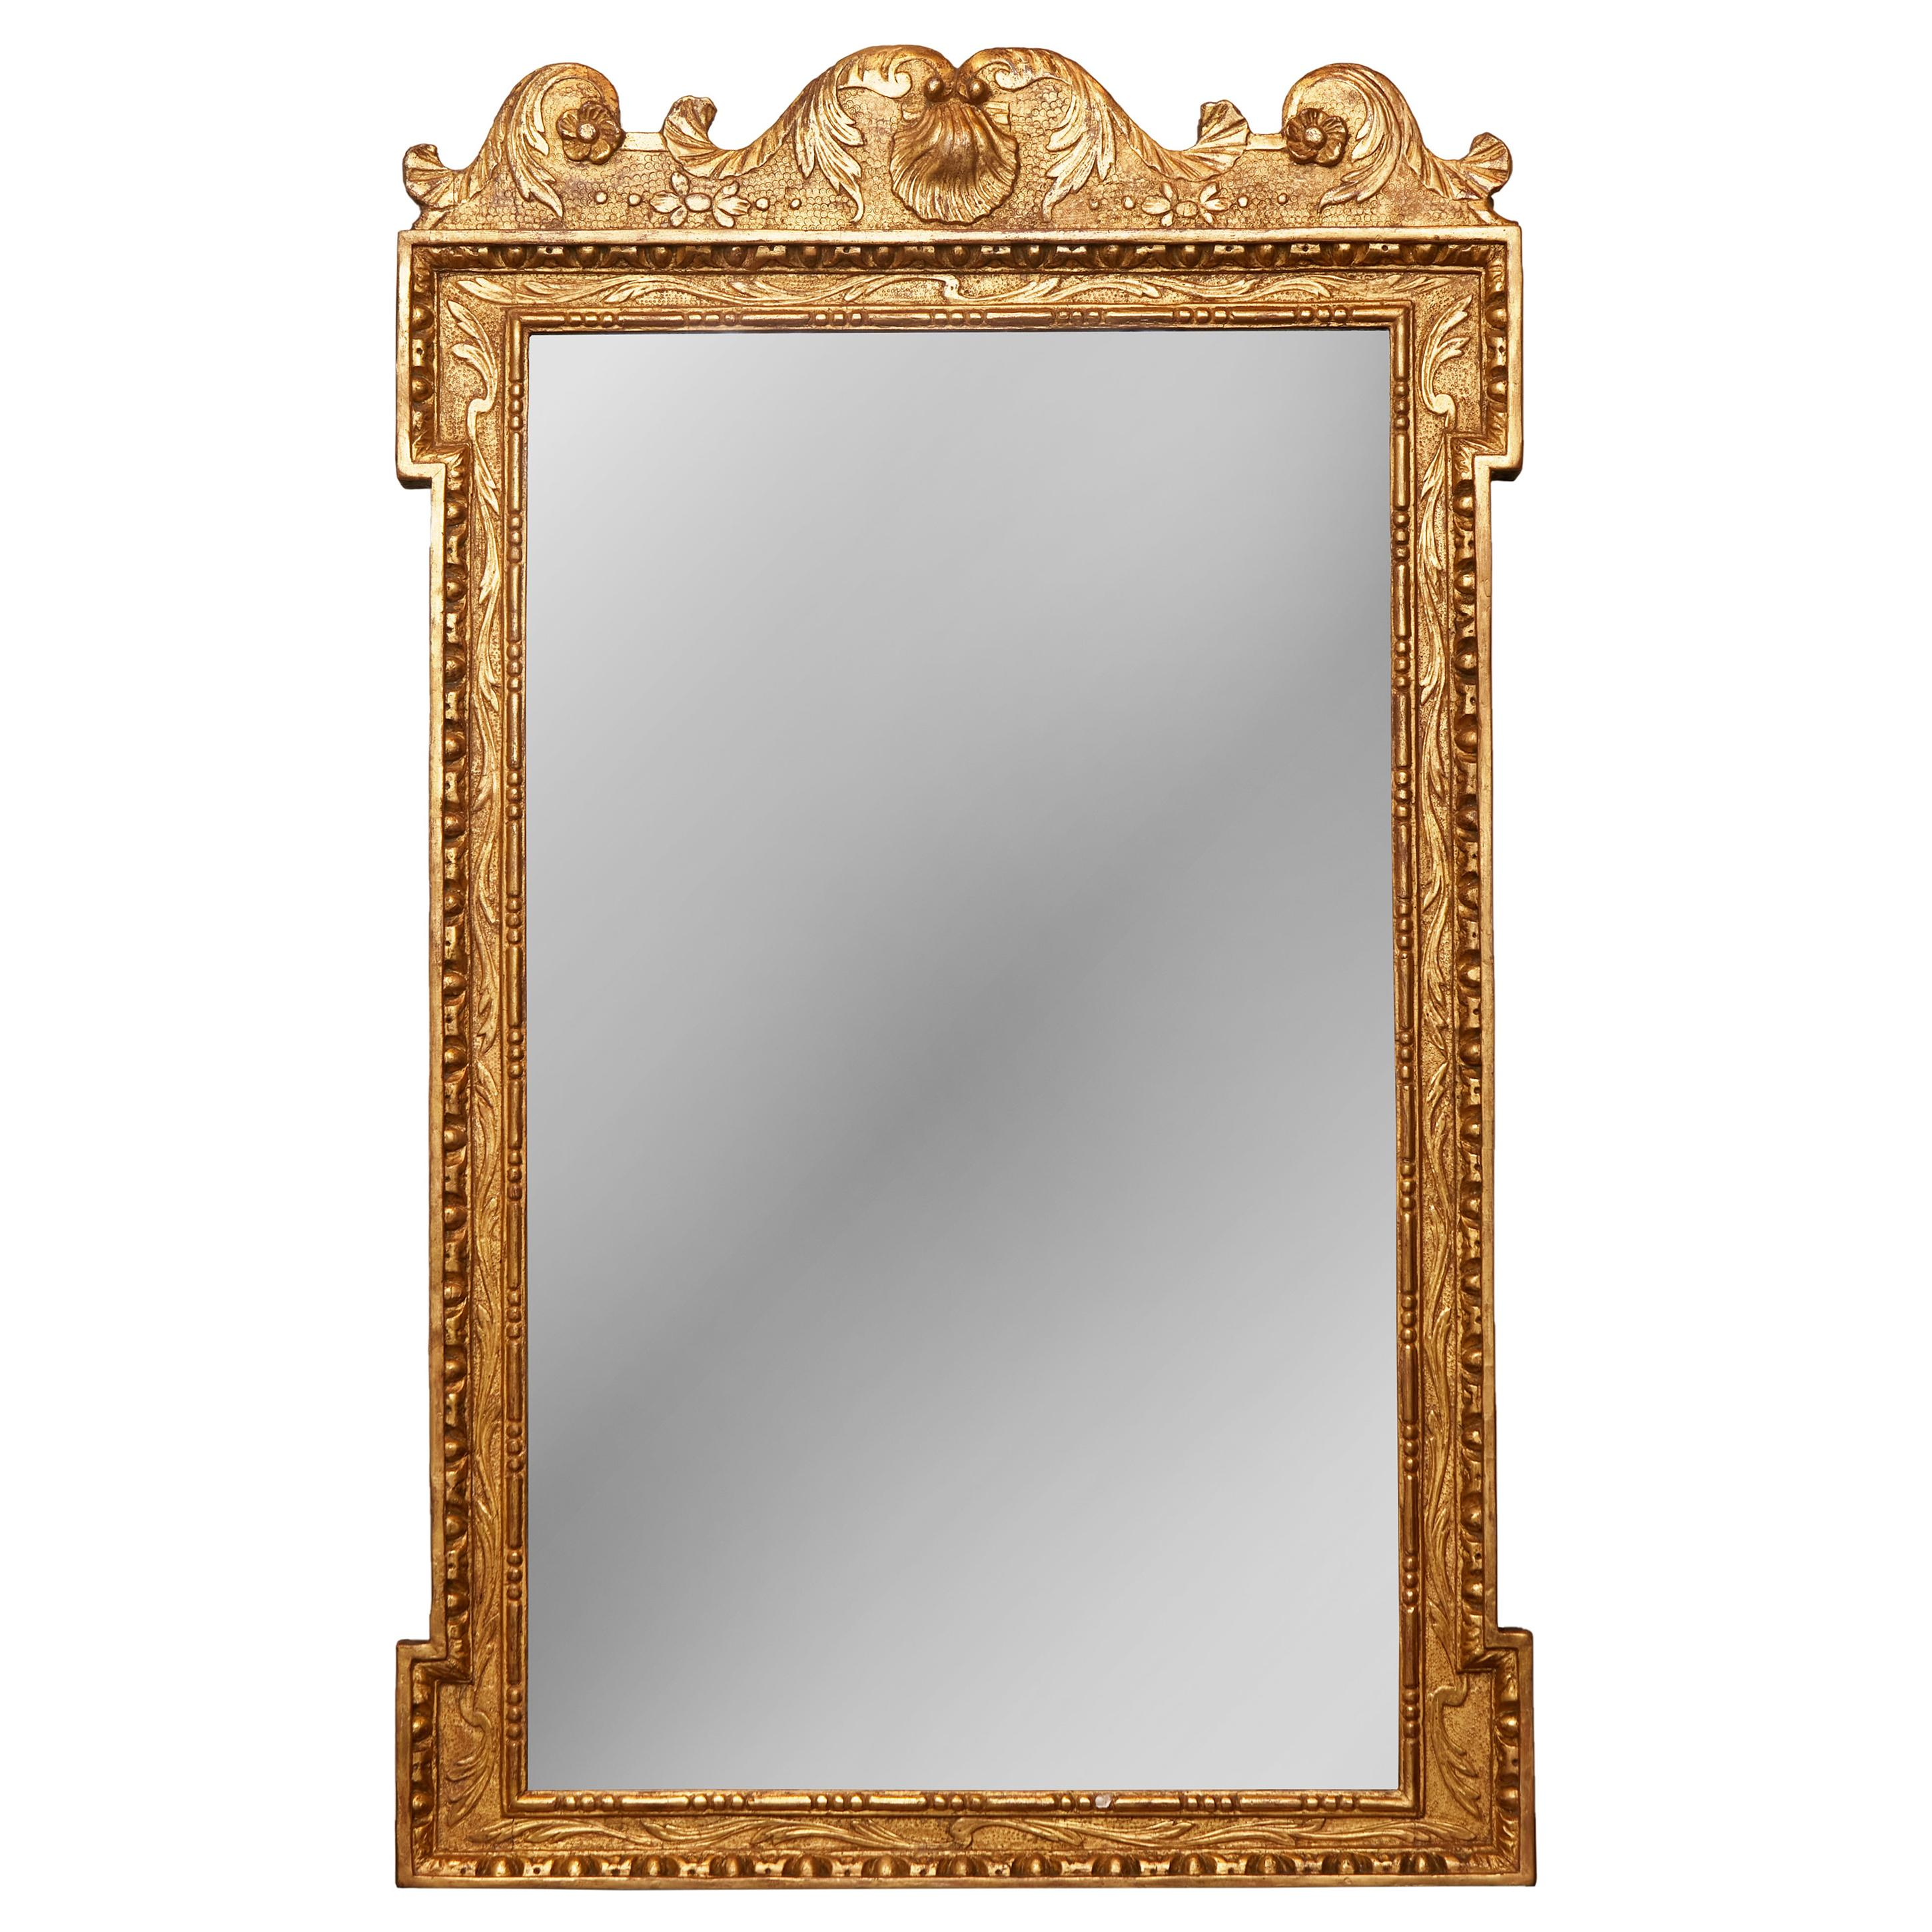 English 1800s Georgian Period Carved Giltwood Mirror with Shell and Foliage